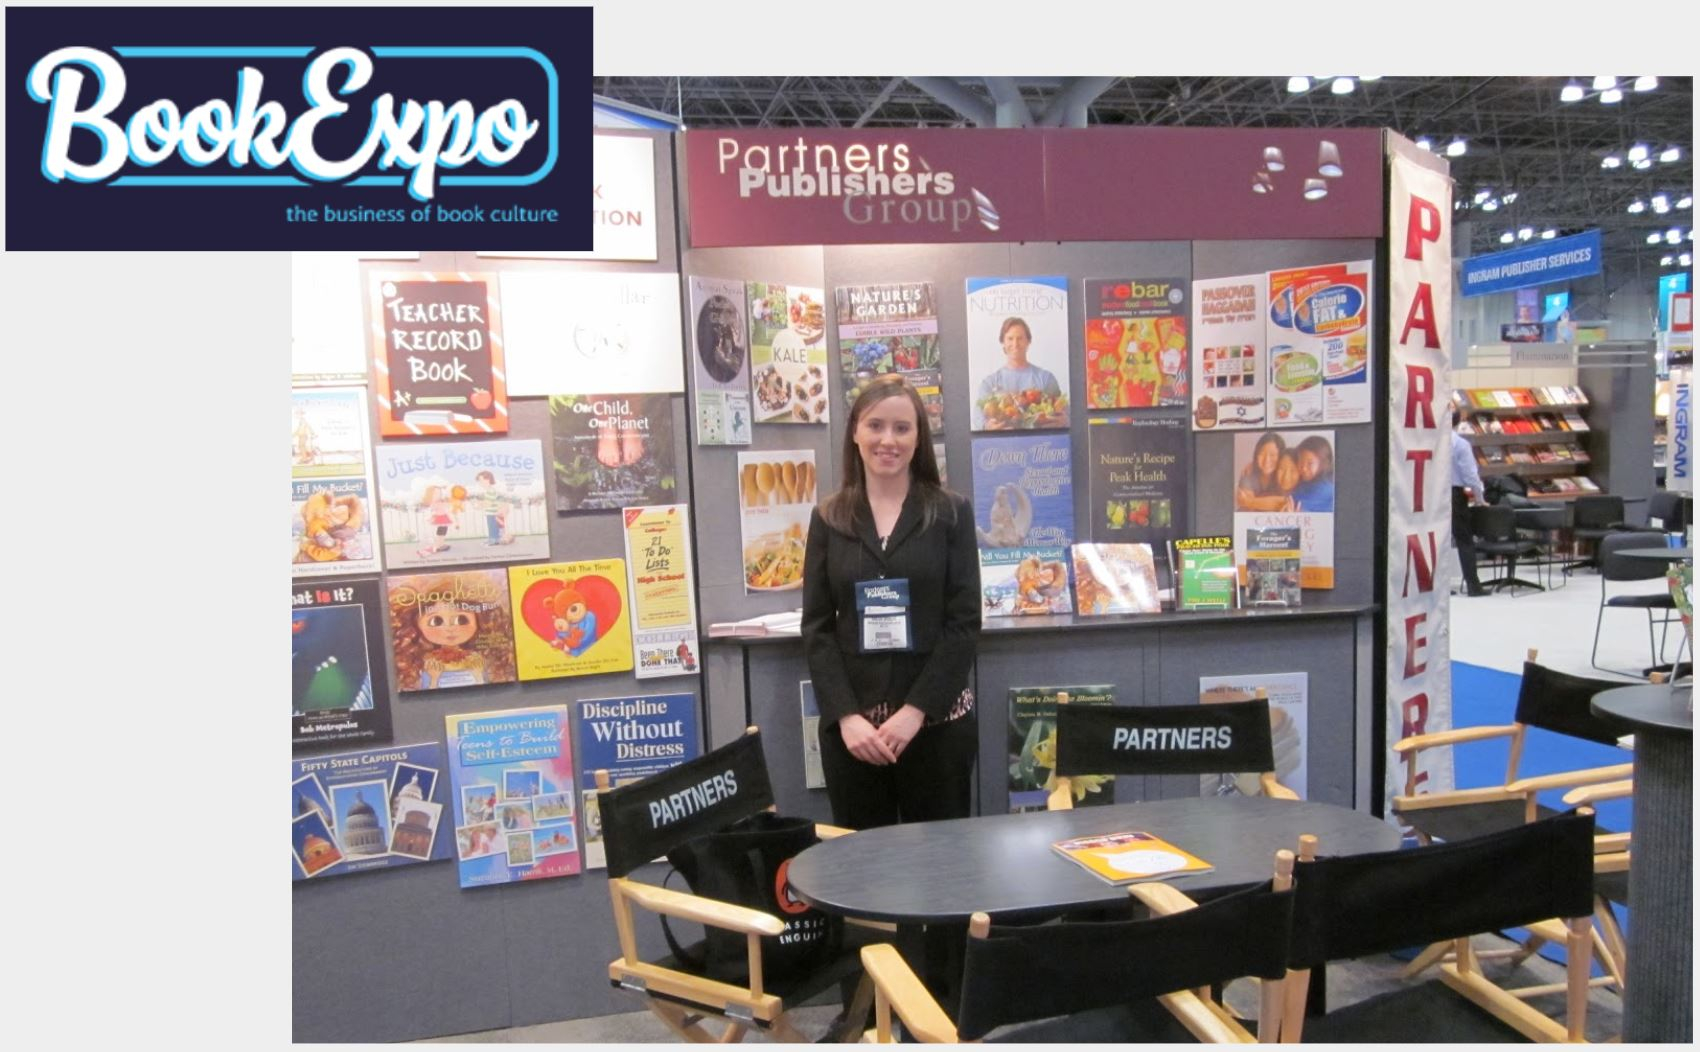 An office professional standing at a conference booth with books behind them.